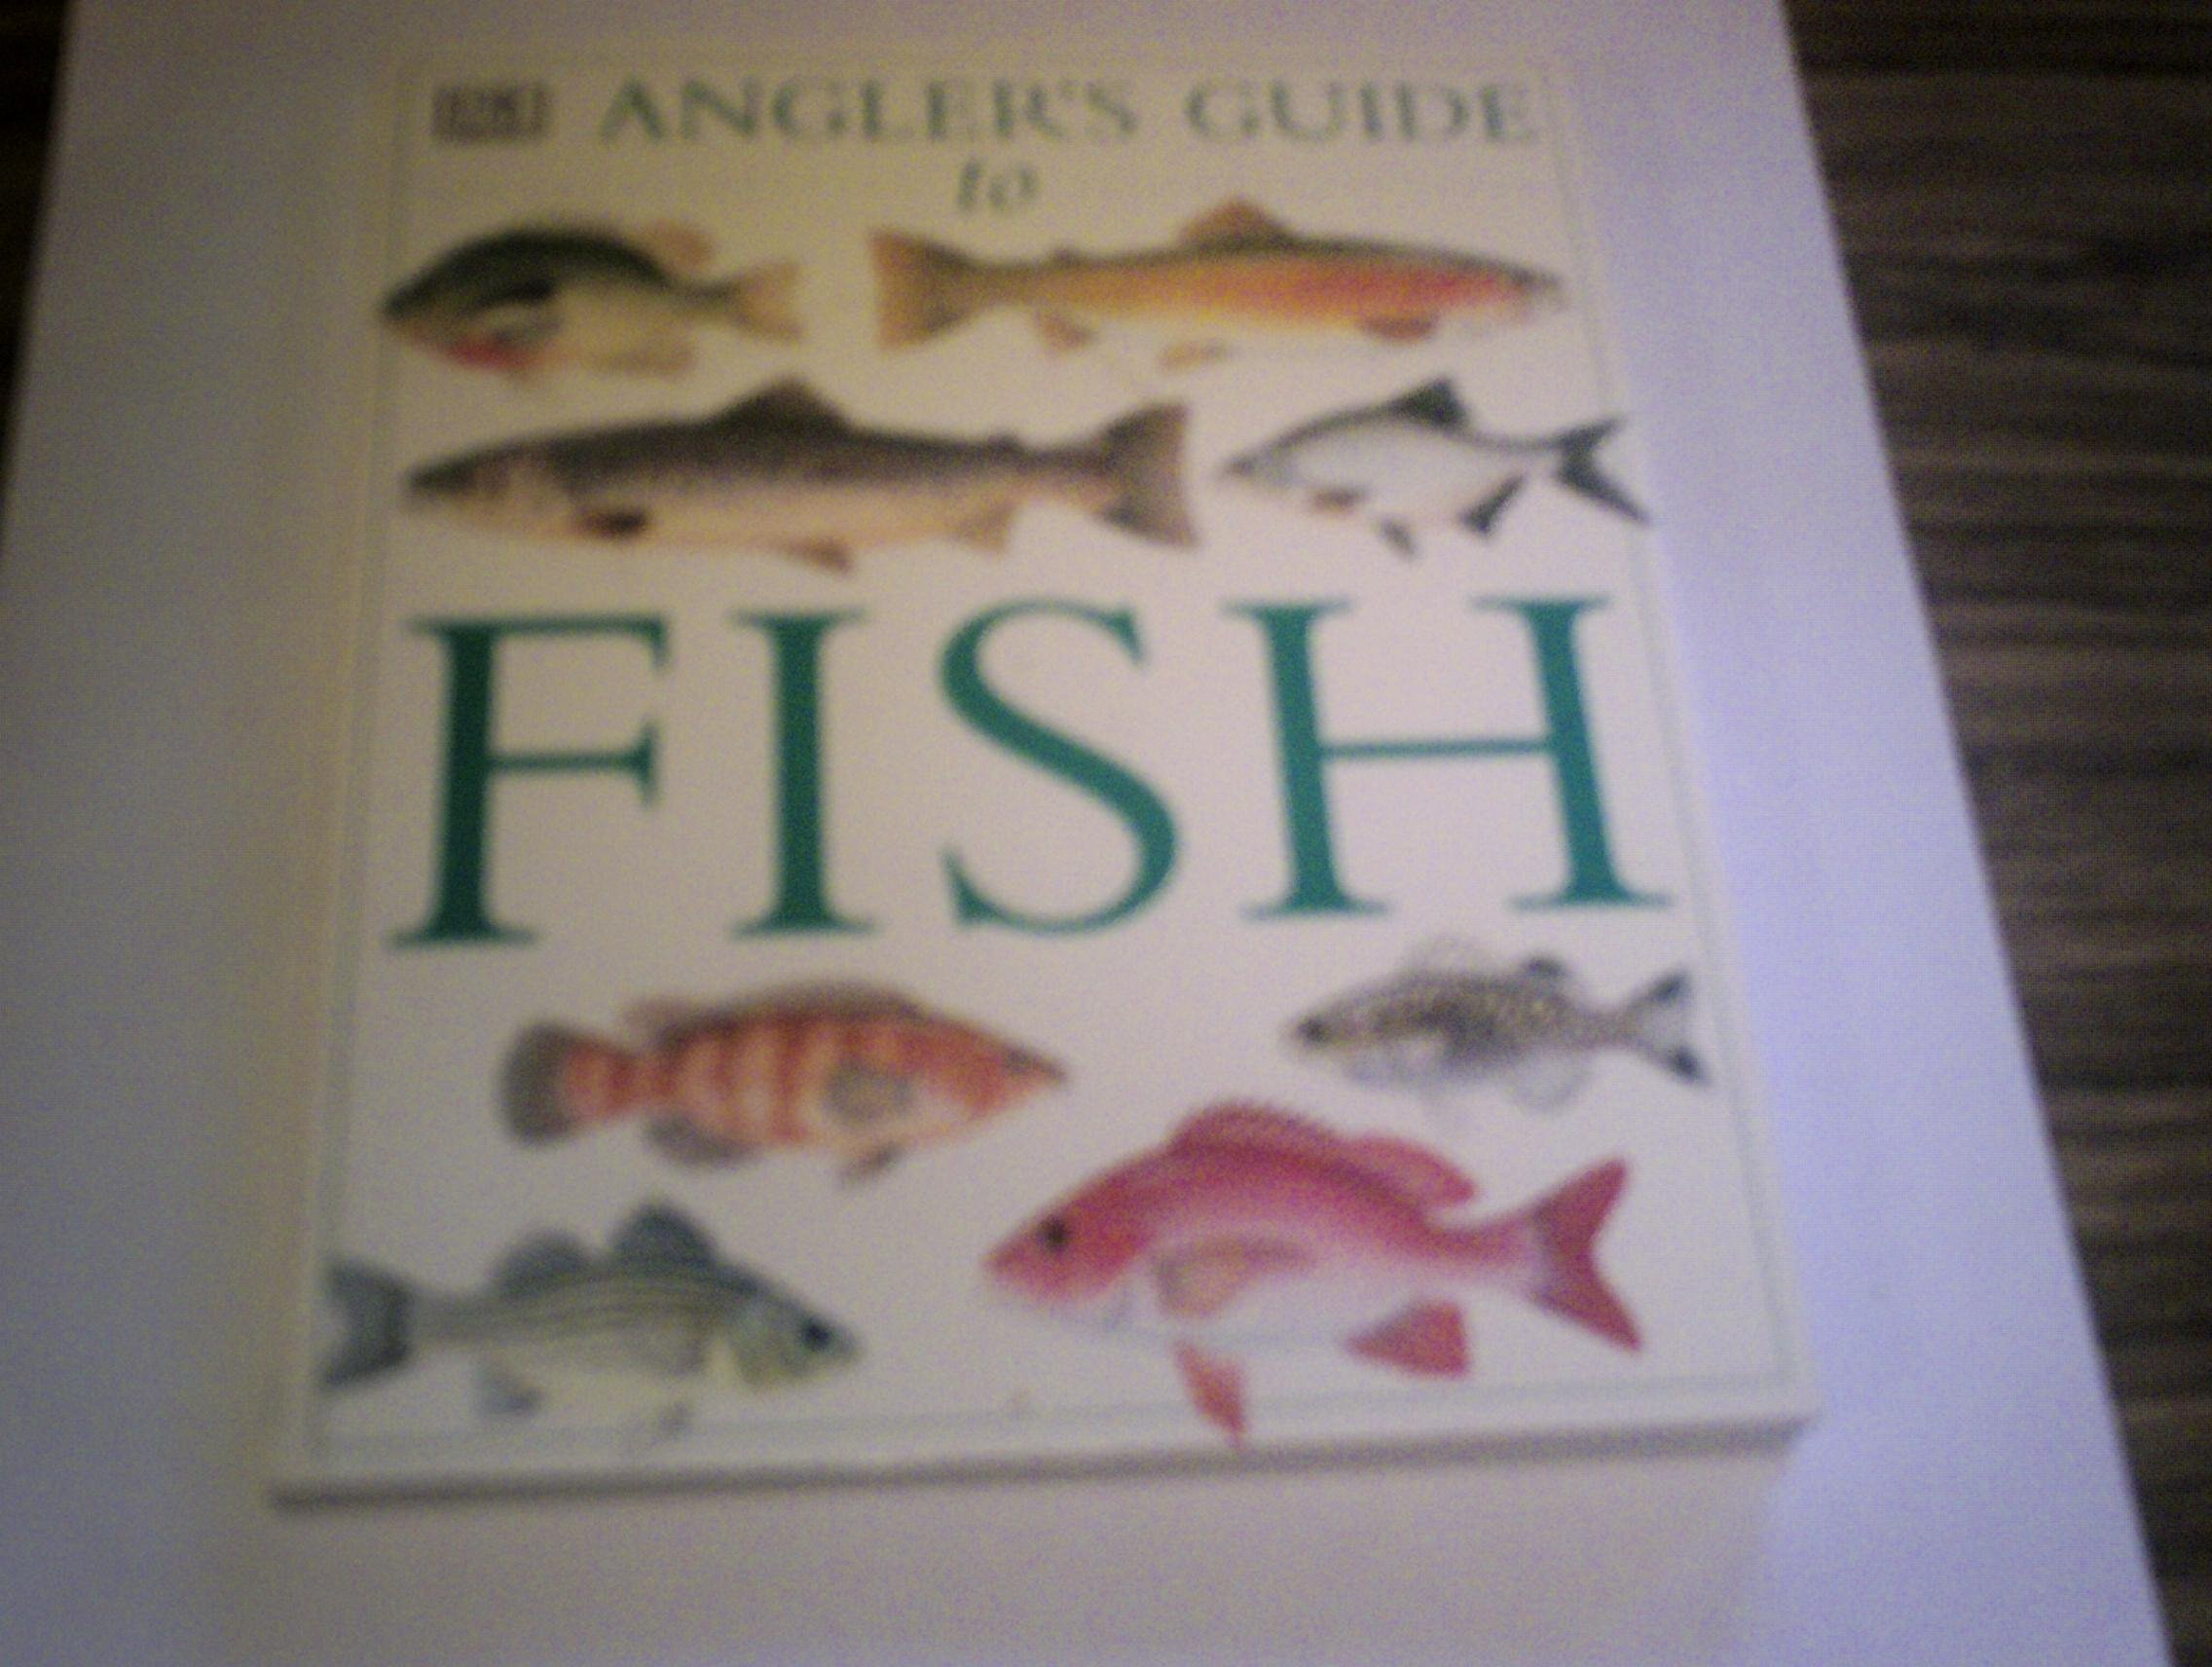 Angler's Guide to Fish